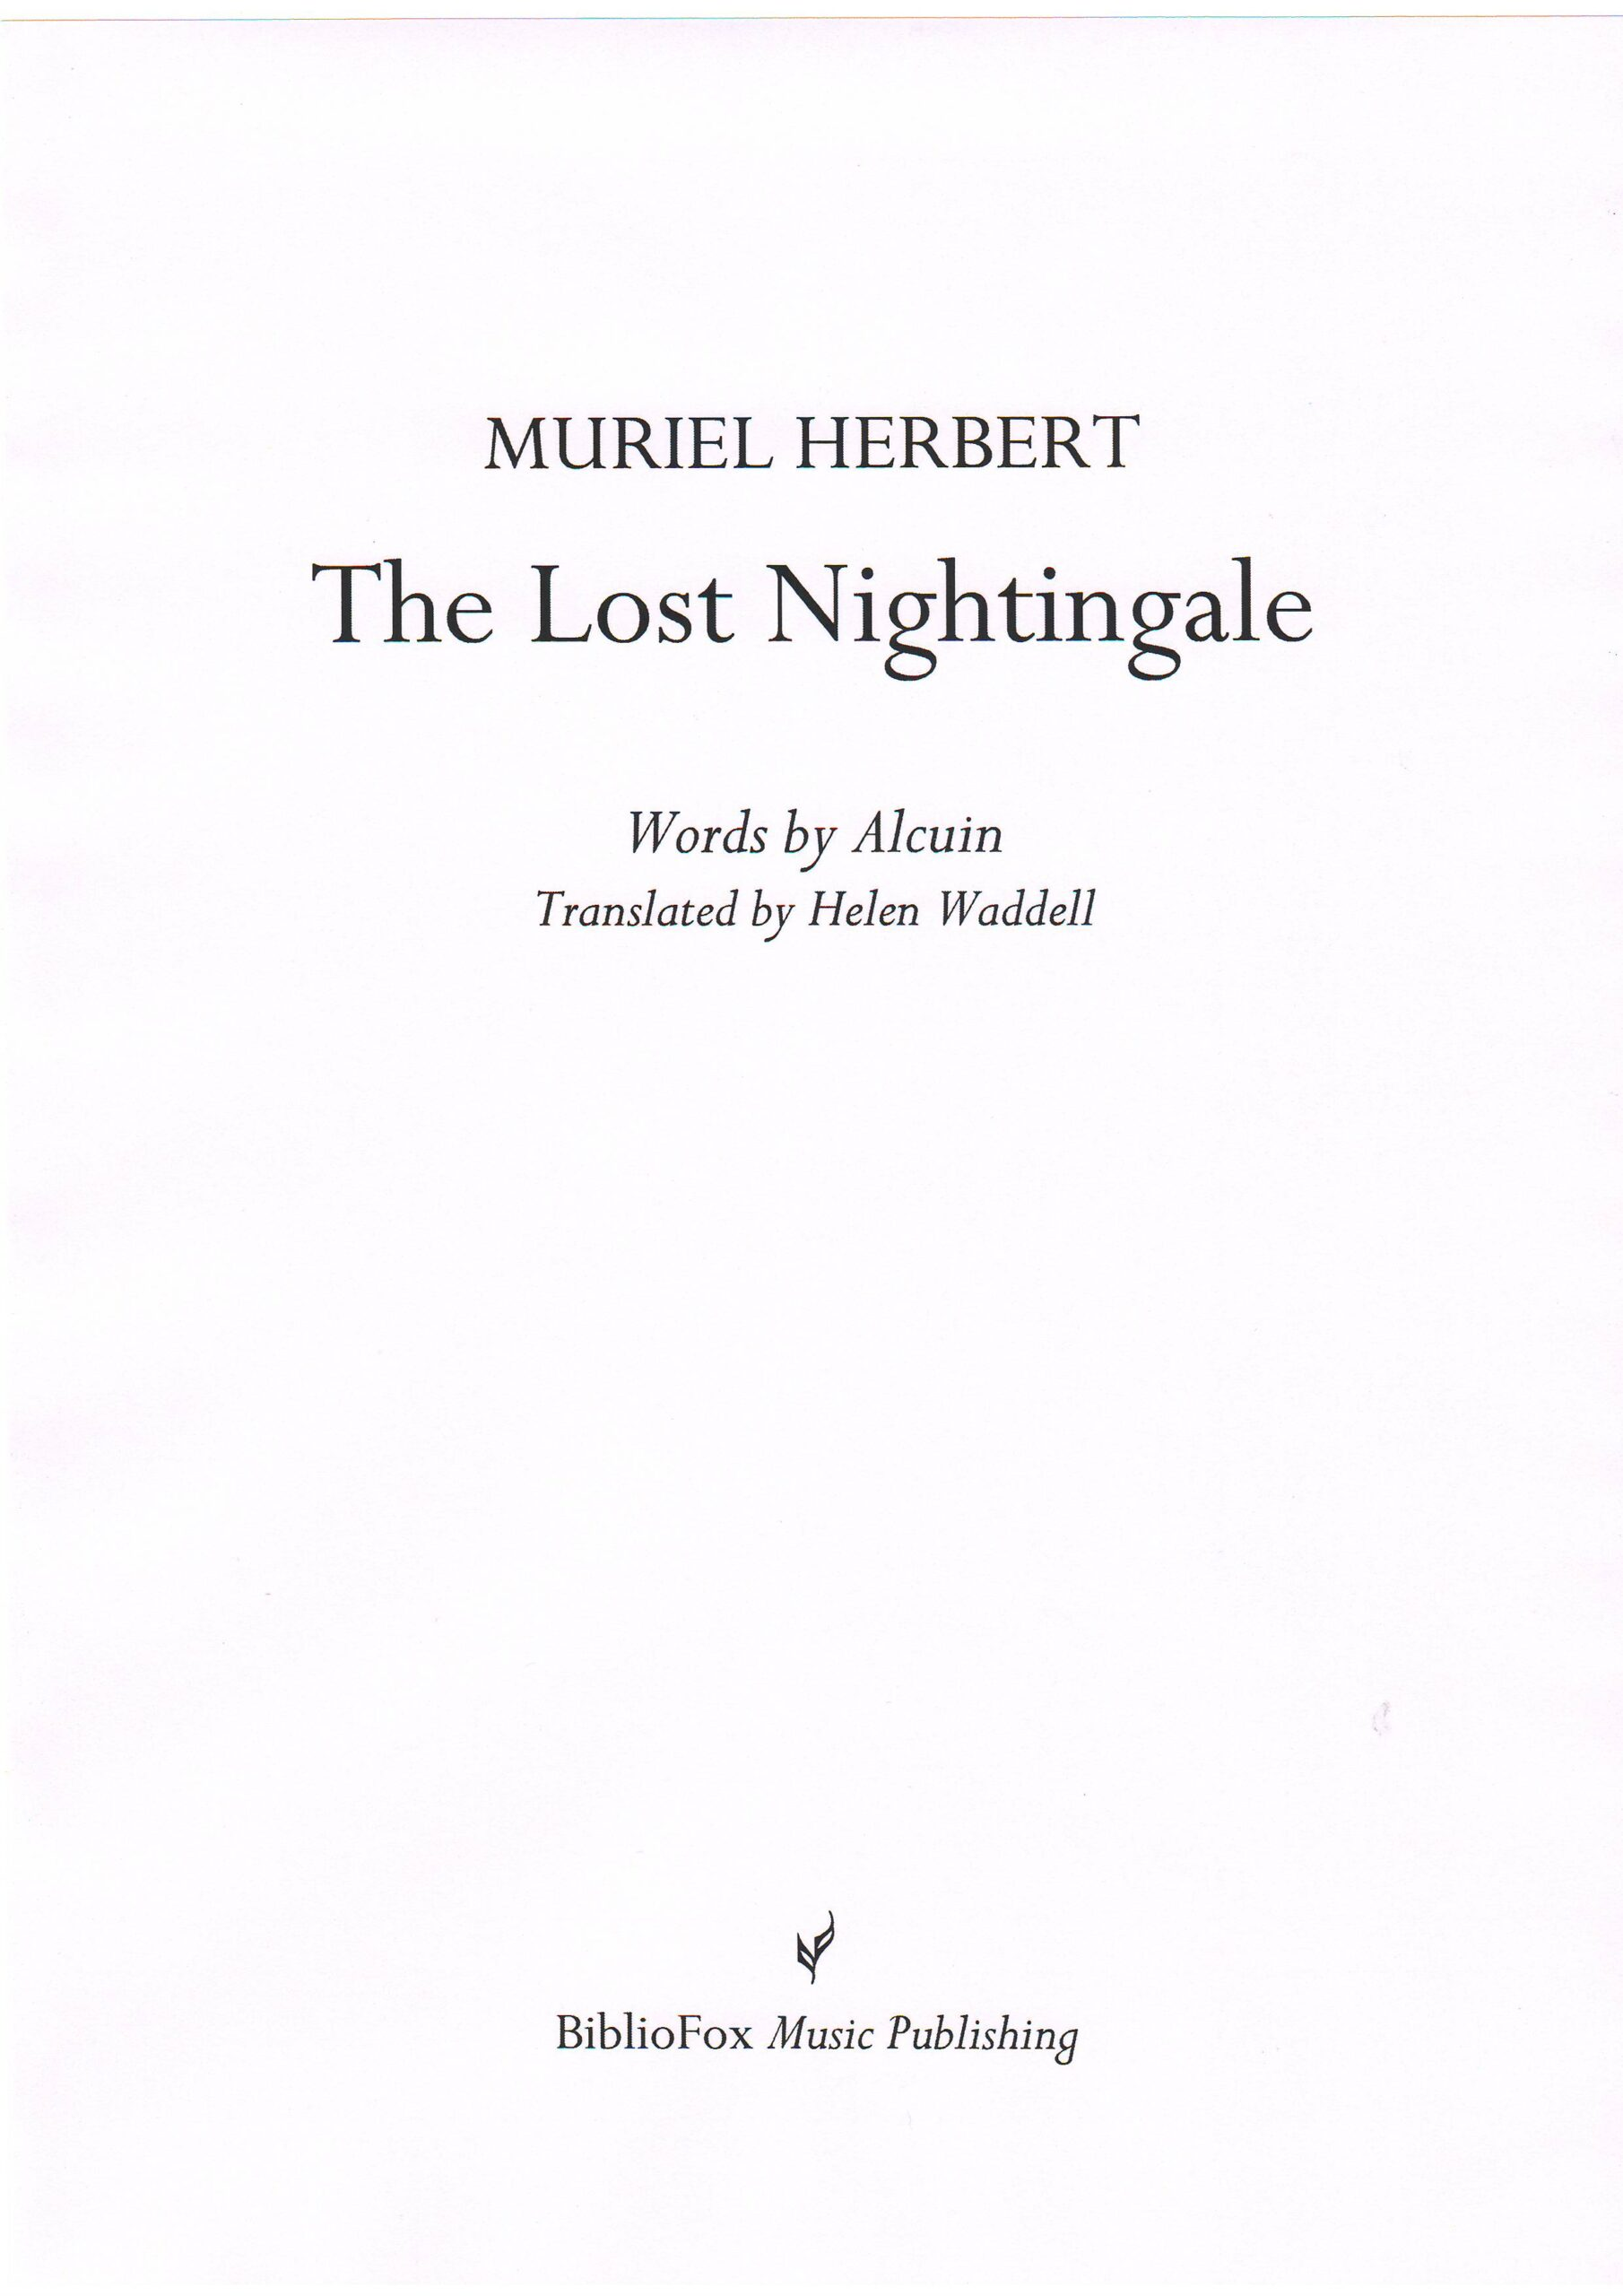 Cover page of Herbert The Lost Nightingale